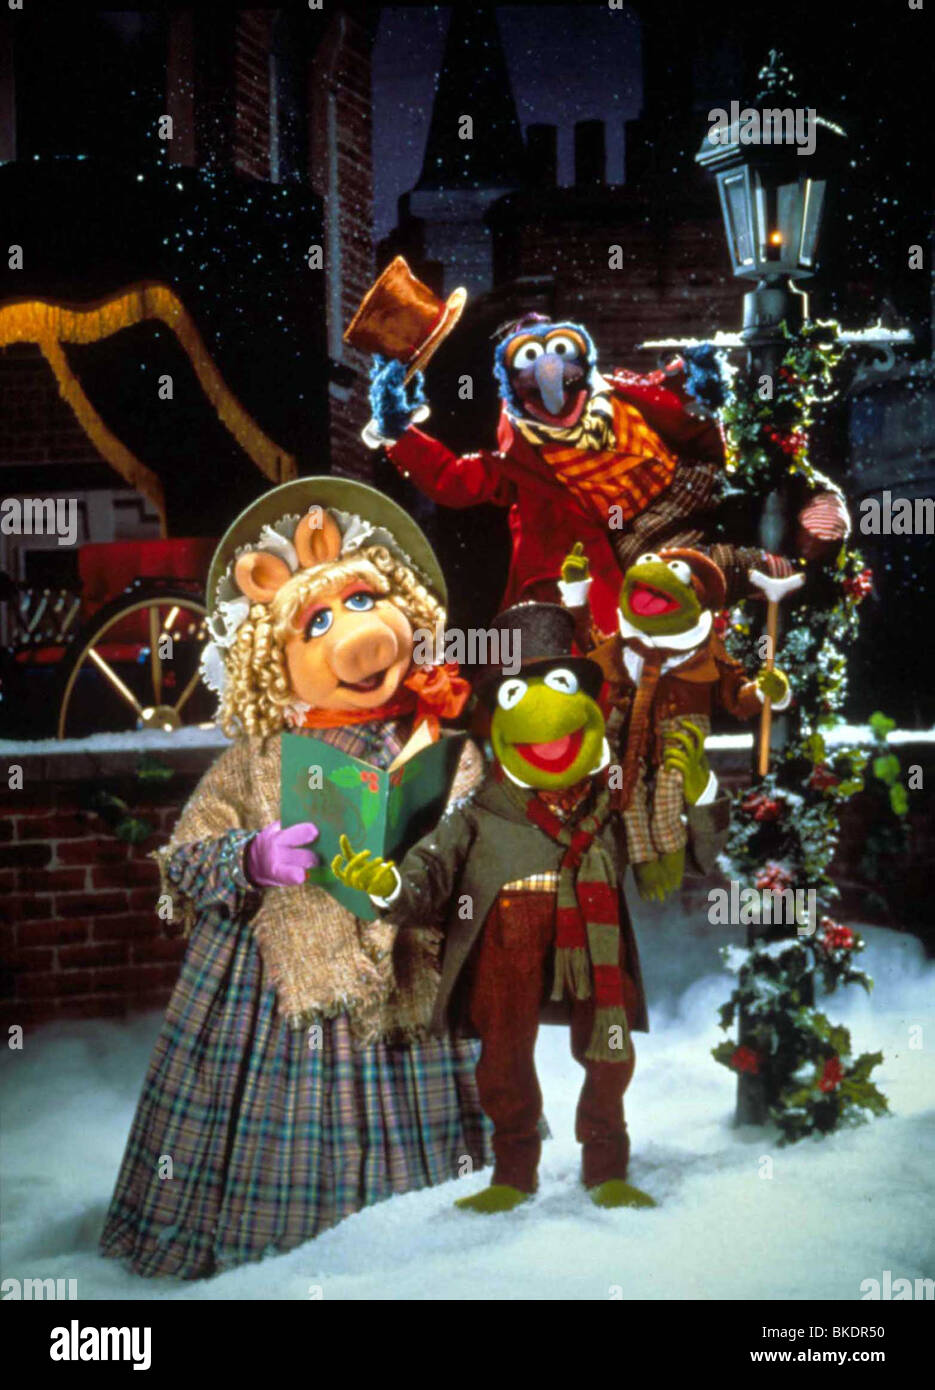 THE MUPPET CHRISTMAS CAROL (1992) MISS PIGGY, KERMIT THE FROG, GONZO ...